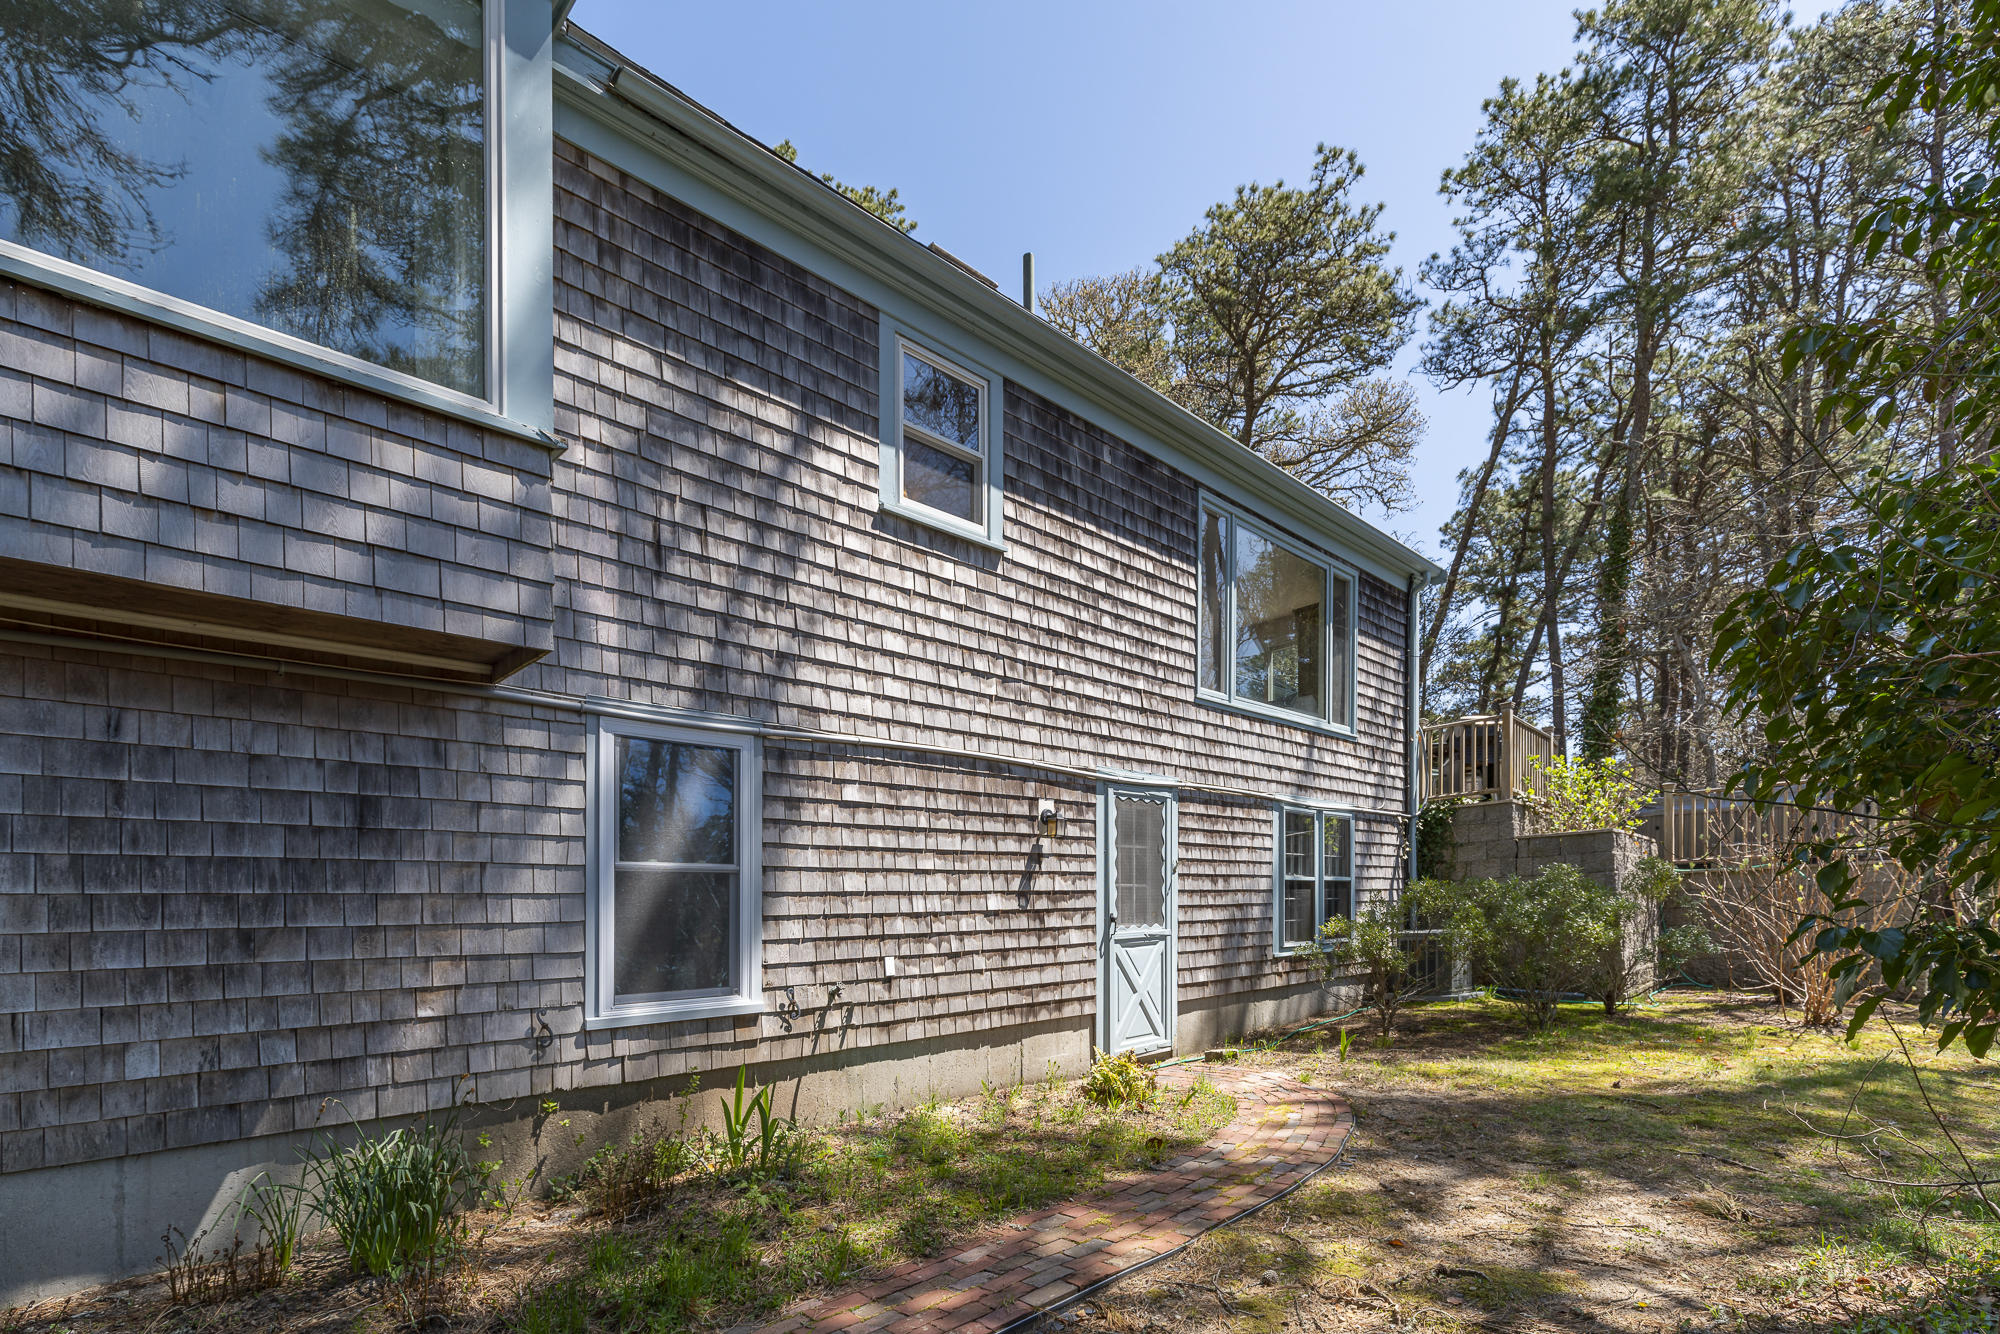 39 Country Side Drive, Chatham MA, 02633 - slide 29